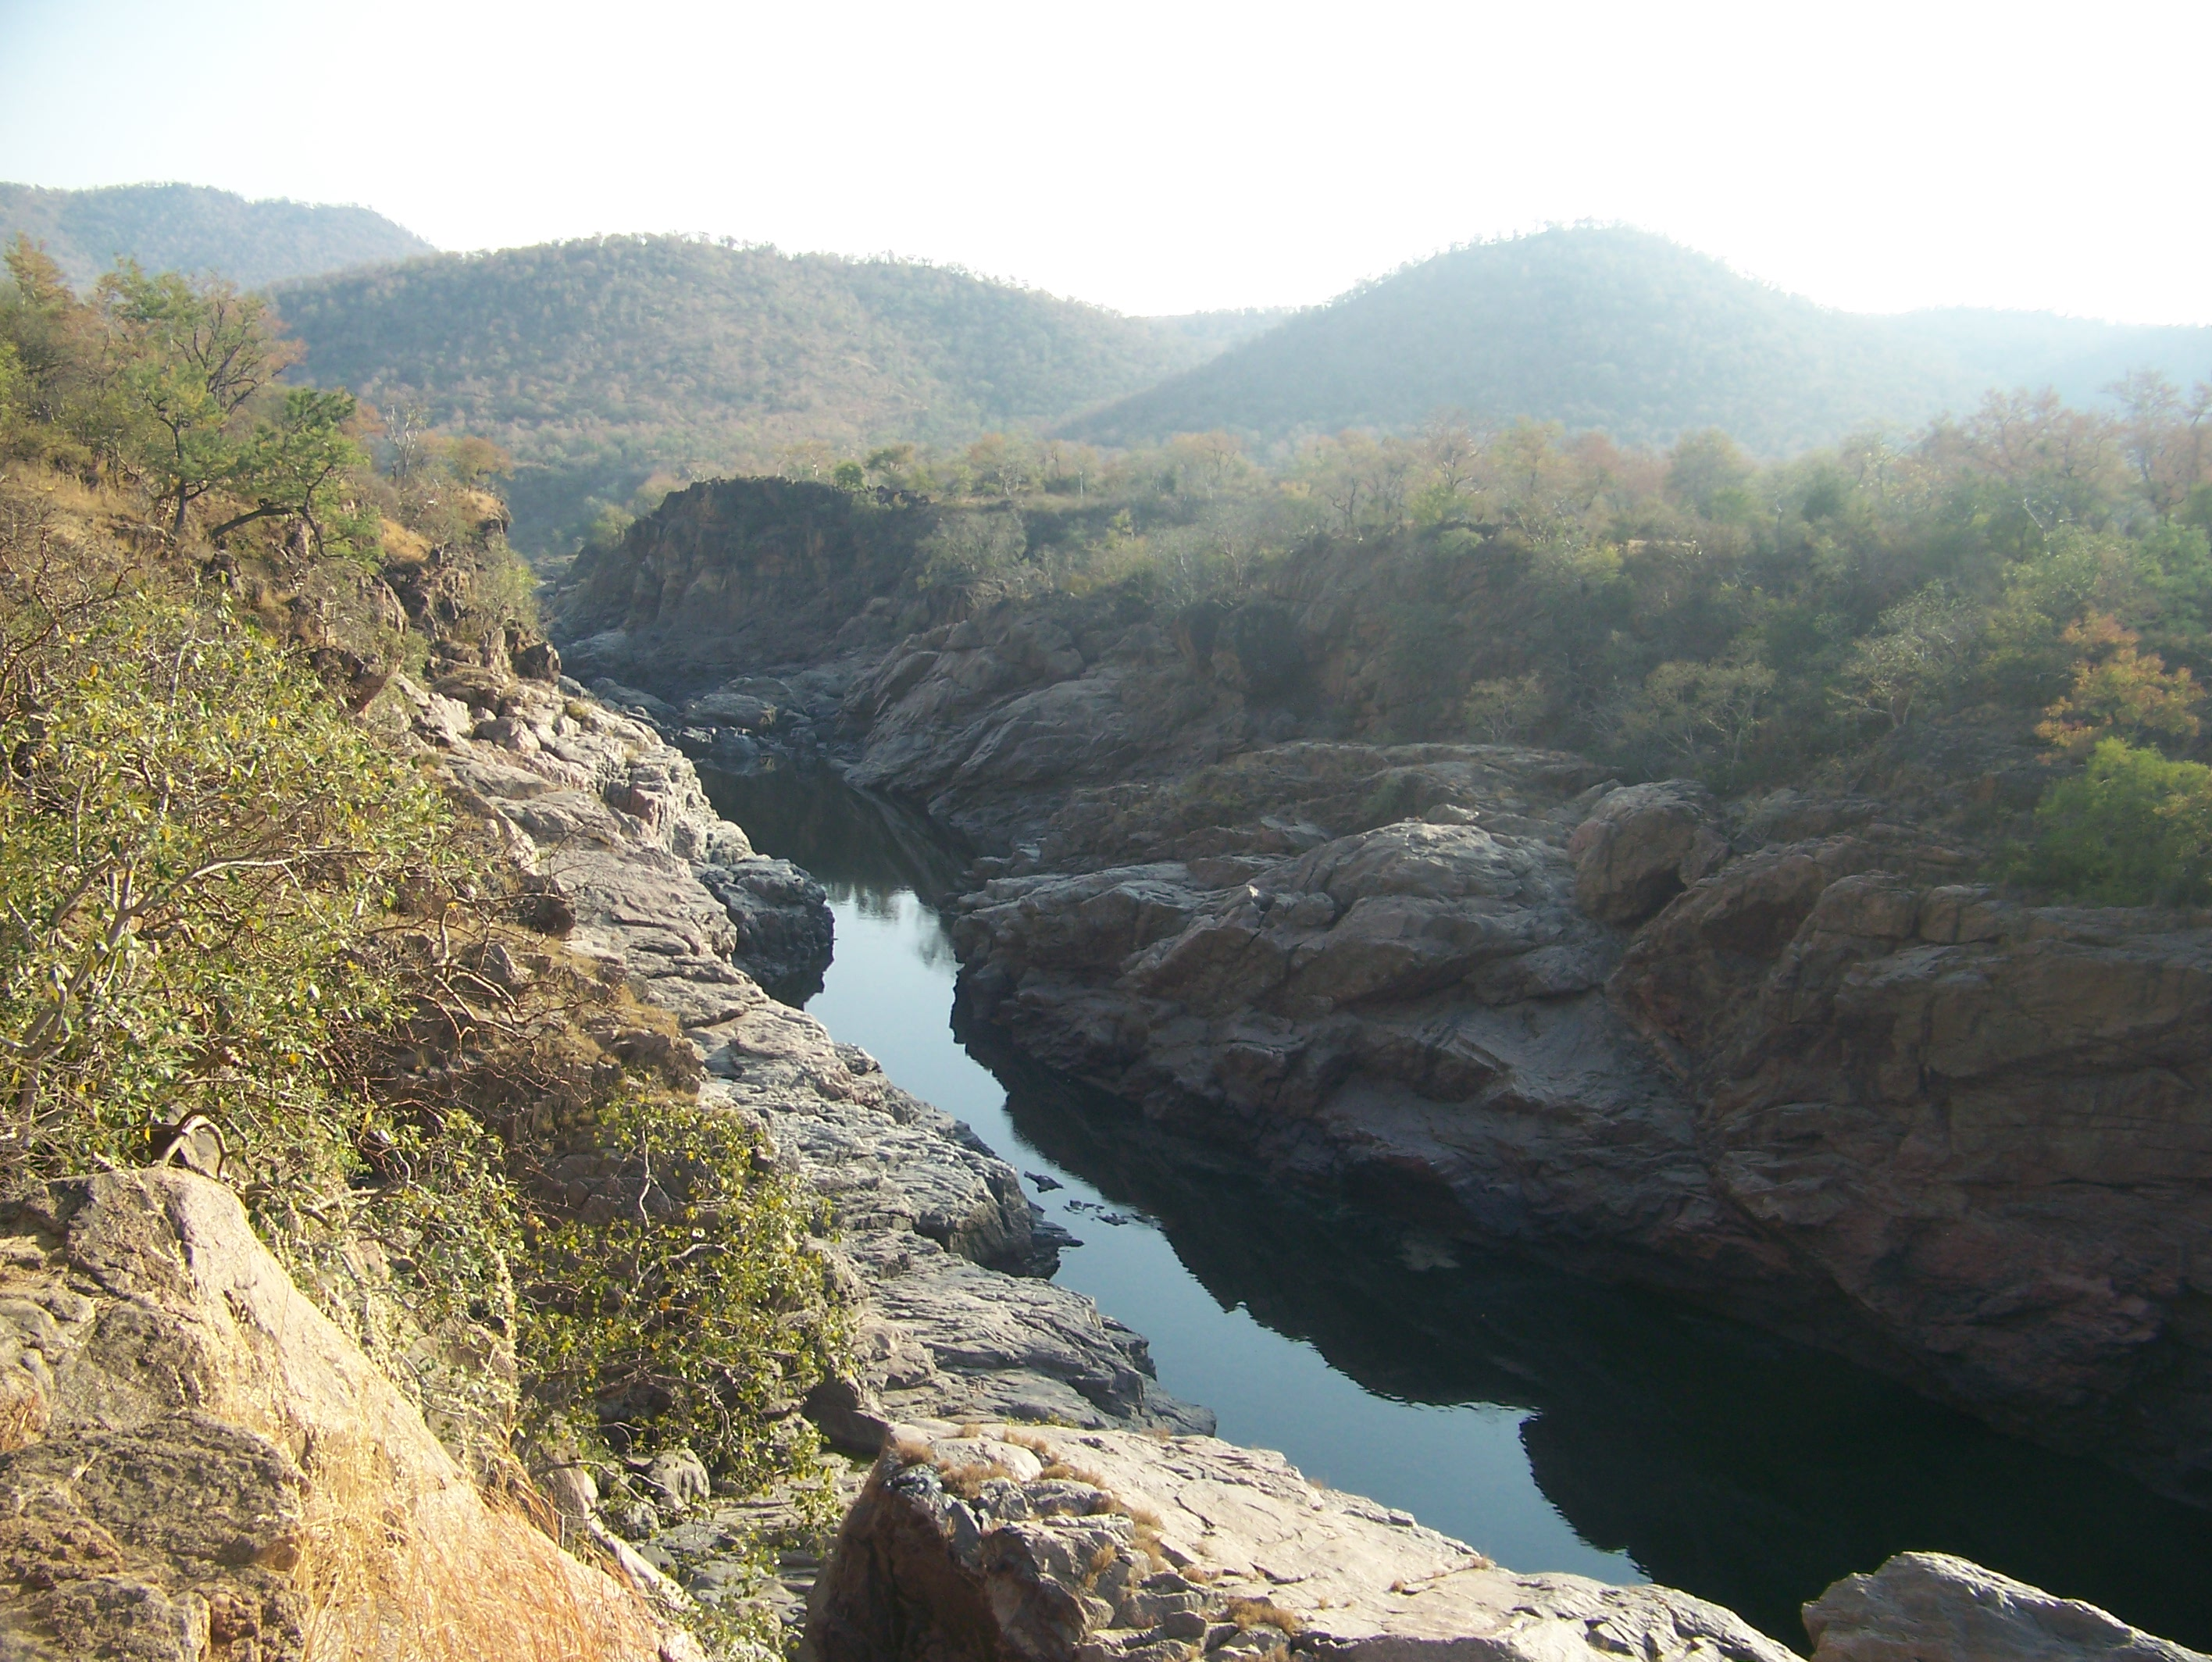 View enroute to Mekedaatu from Sangama